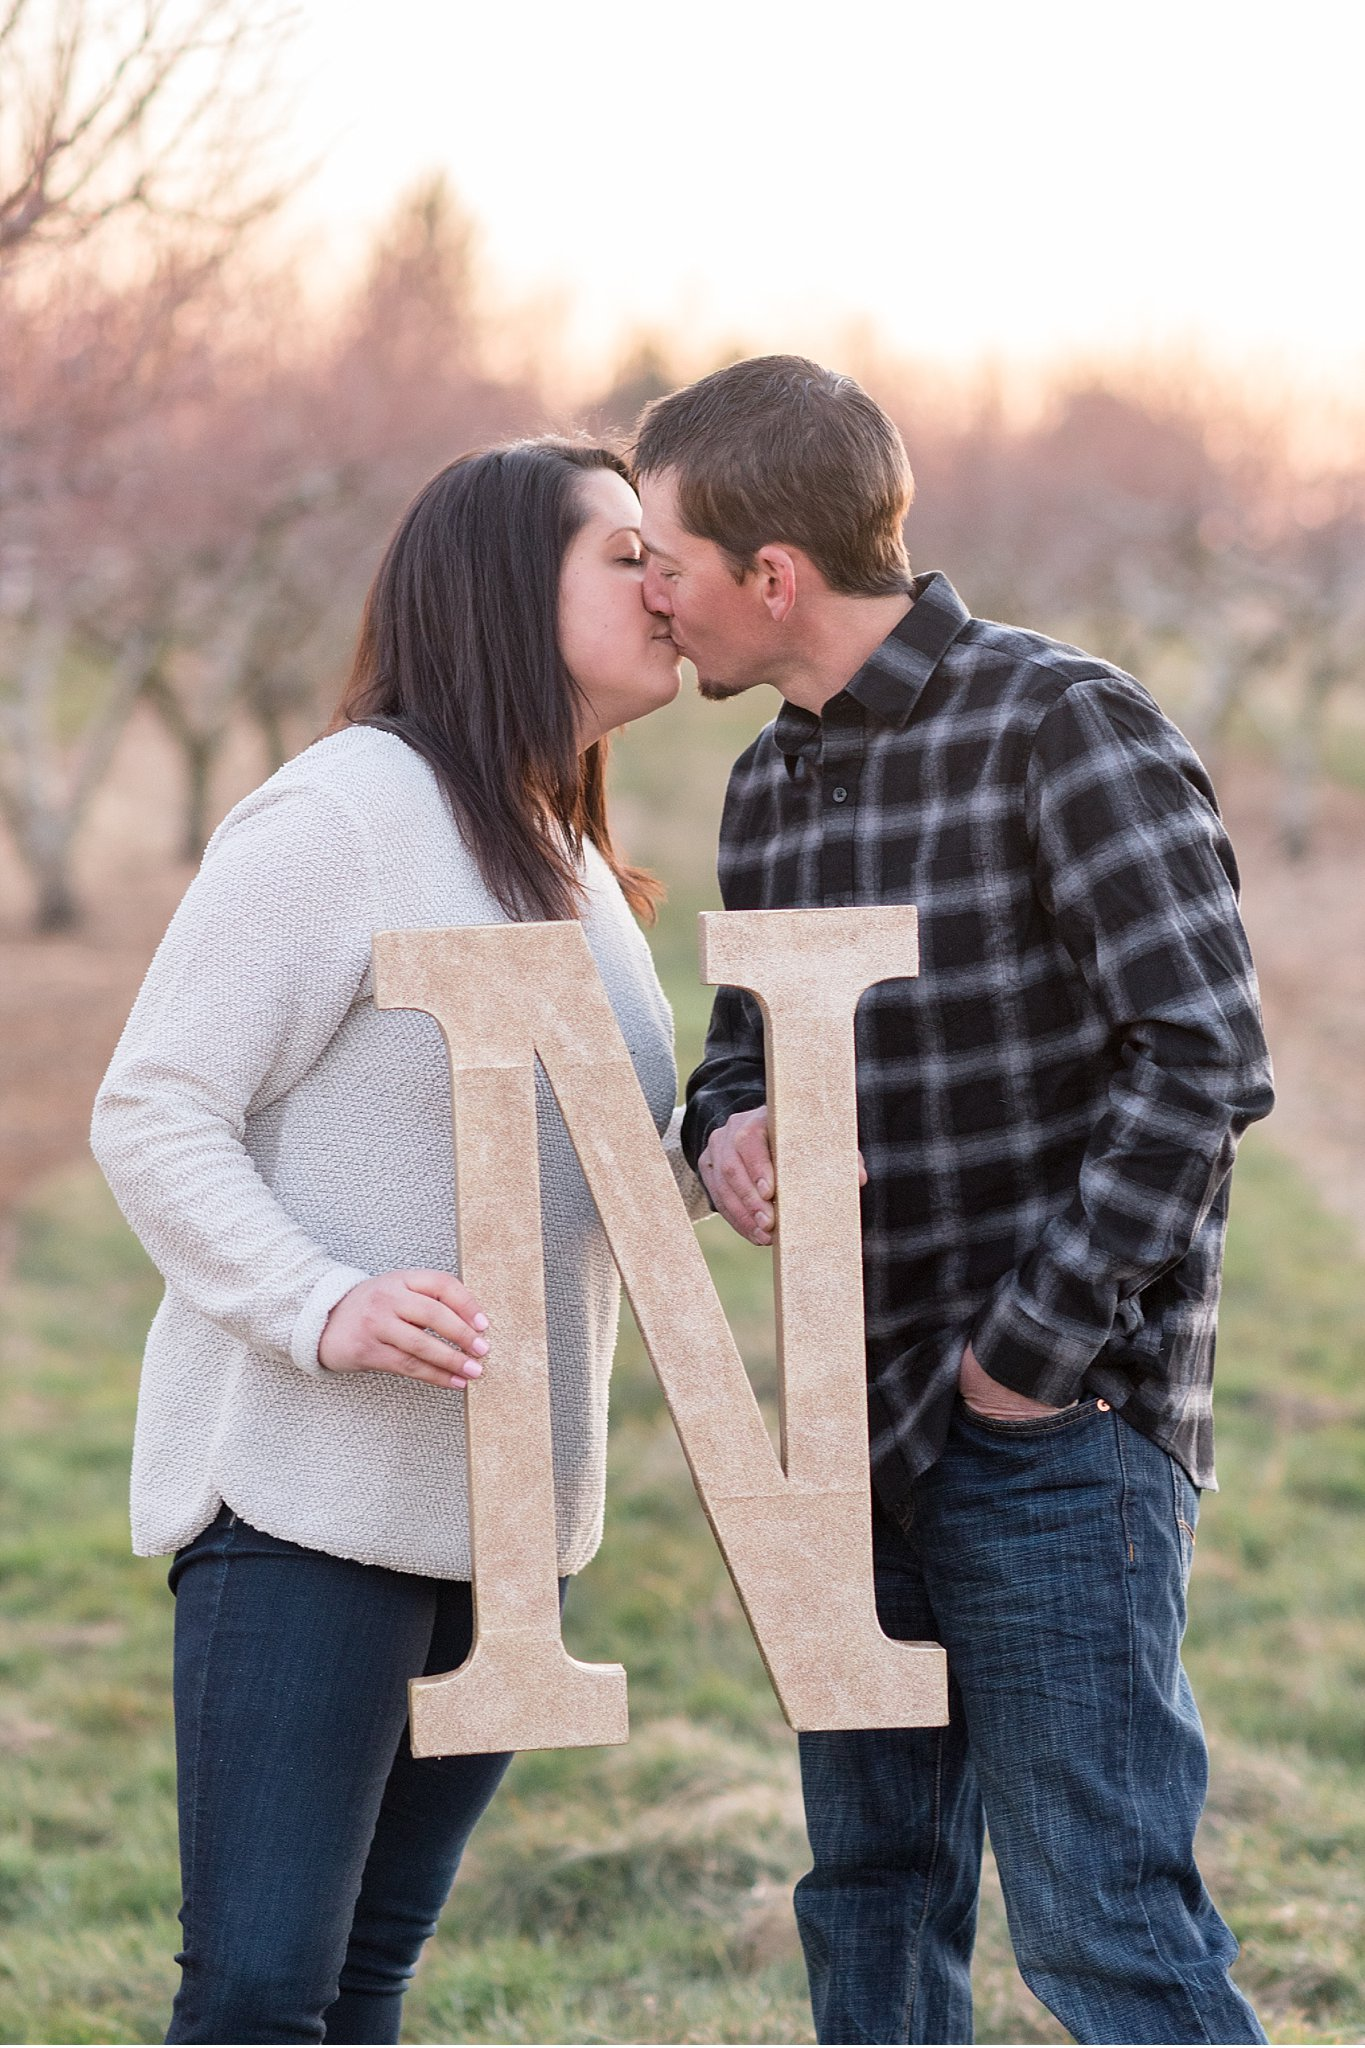 New Providence orchard Lancaster County Wedding and engagement photographer photo_0970.jpg